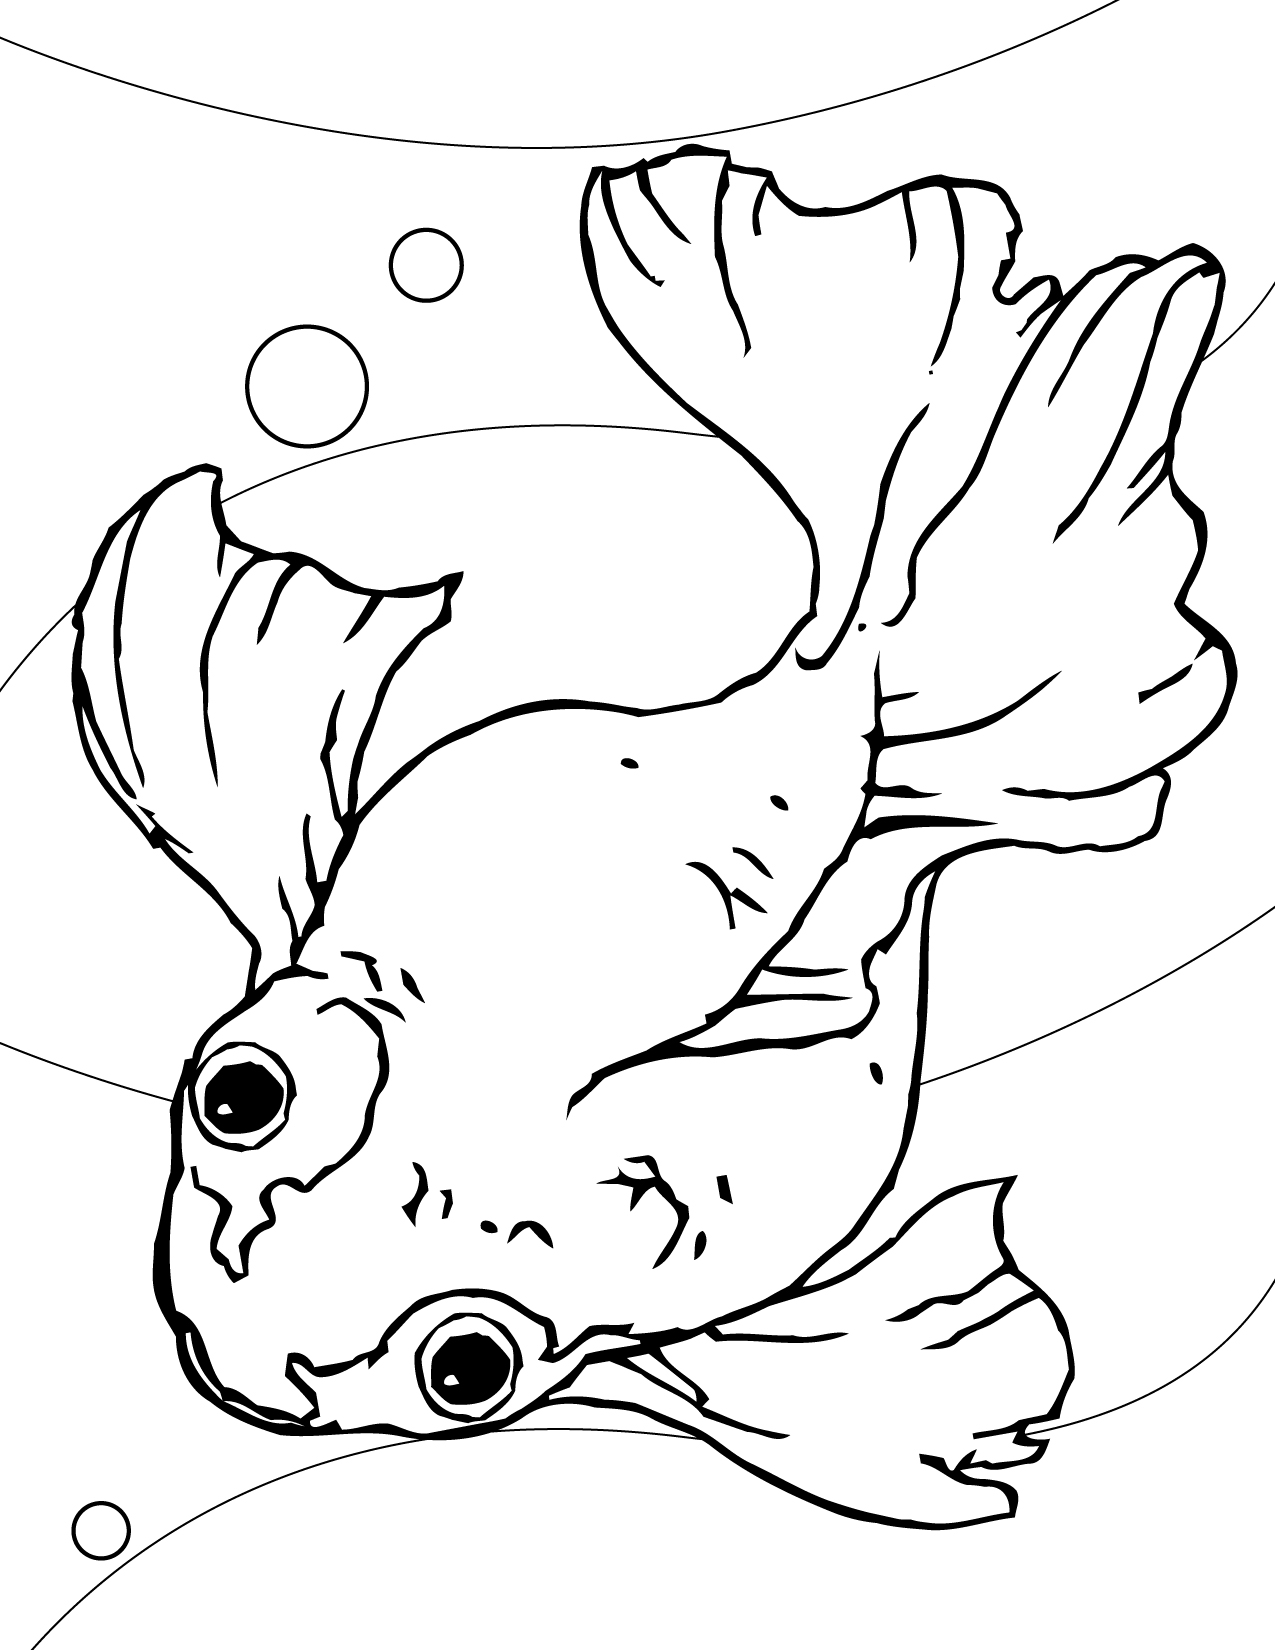 Goldfish Coloring Page Handipoints